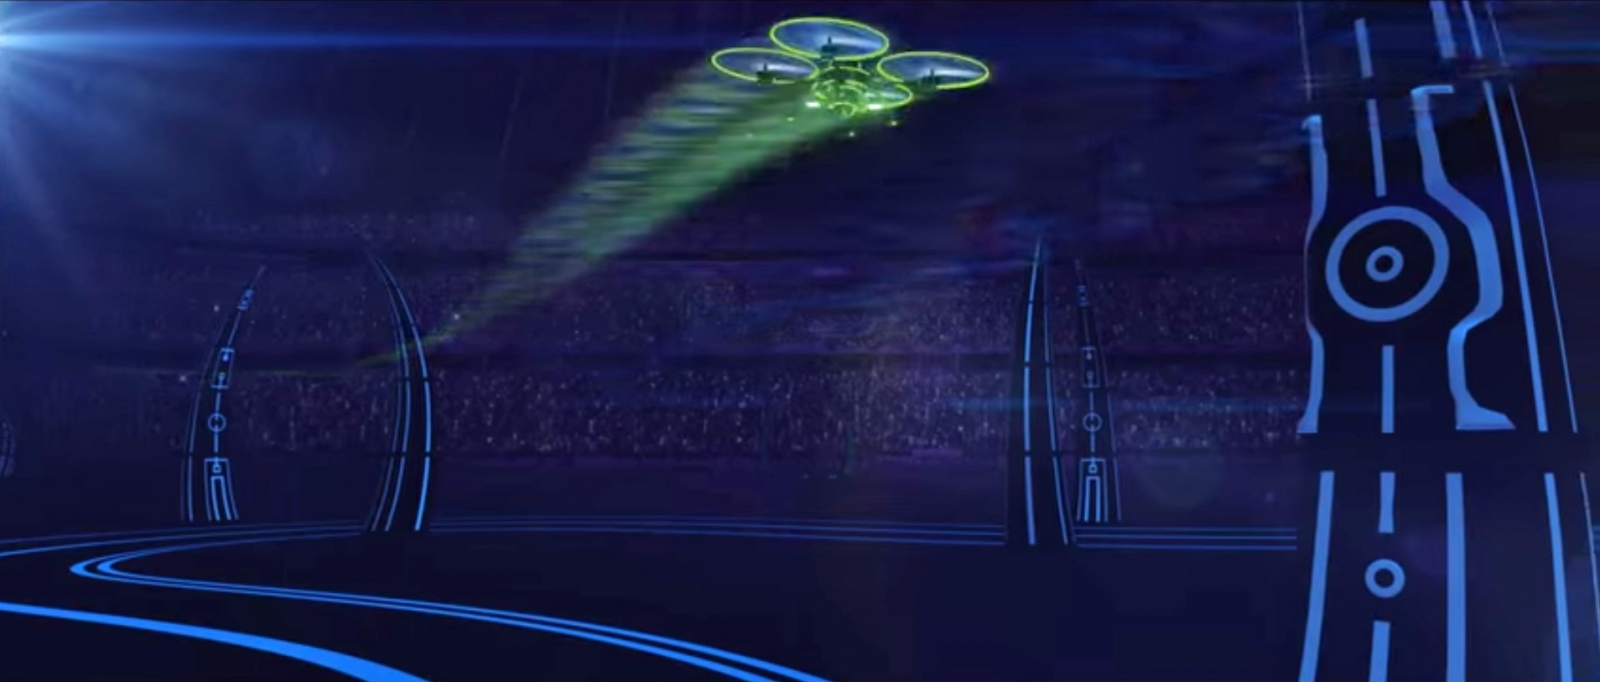 A Dutch event promoter wants to hold the world's first live helicopter drone entertainment show this year at the Amsterdam arena. This is a visualisation of a drone race